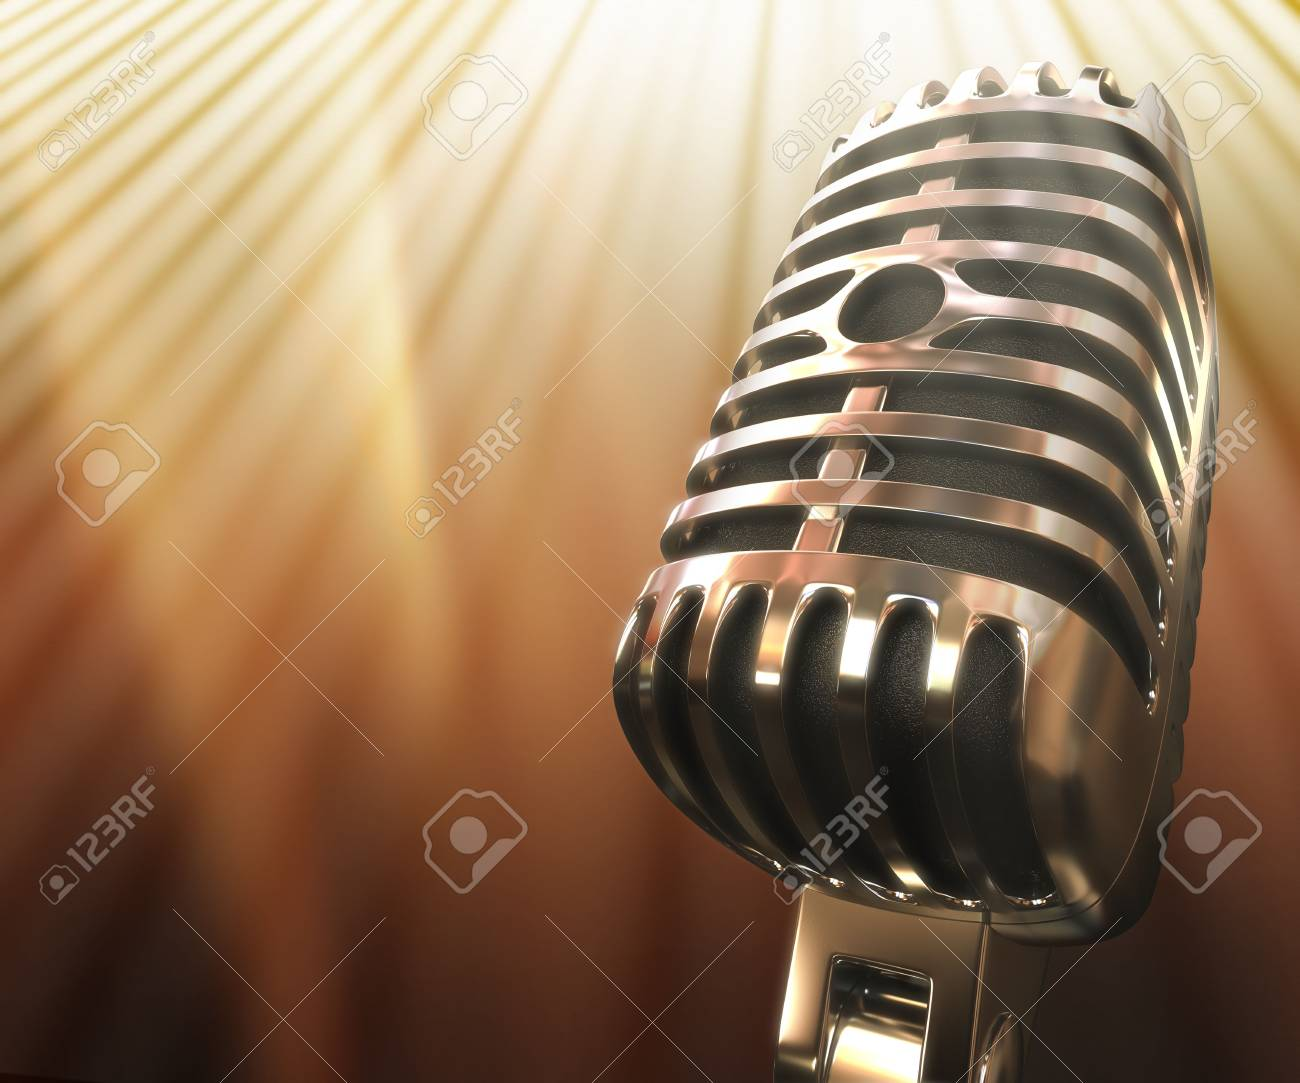 Classic microphone. Your text on the left space. Stock Photo - 3394162